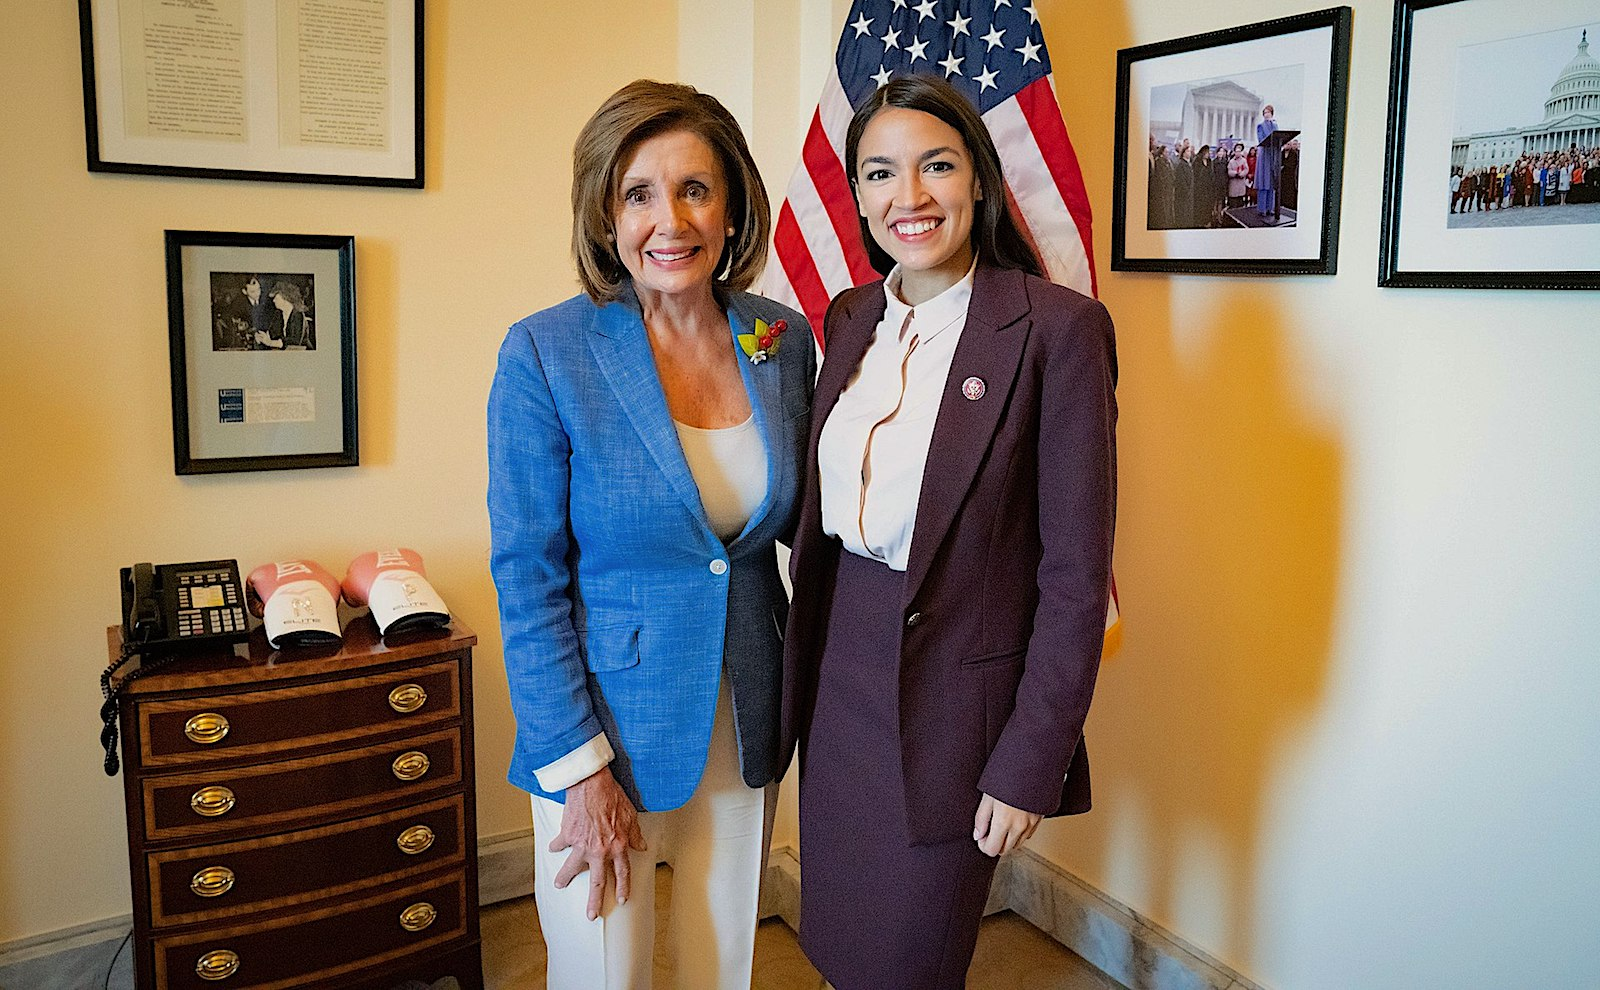 House Speaker Nancy Pelosi (left) meets with Alexandria Ocasio-Cortez in her office, July 26, 2019. (Courtesy of the Office of Nancy Pelosi)